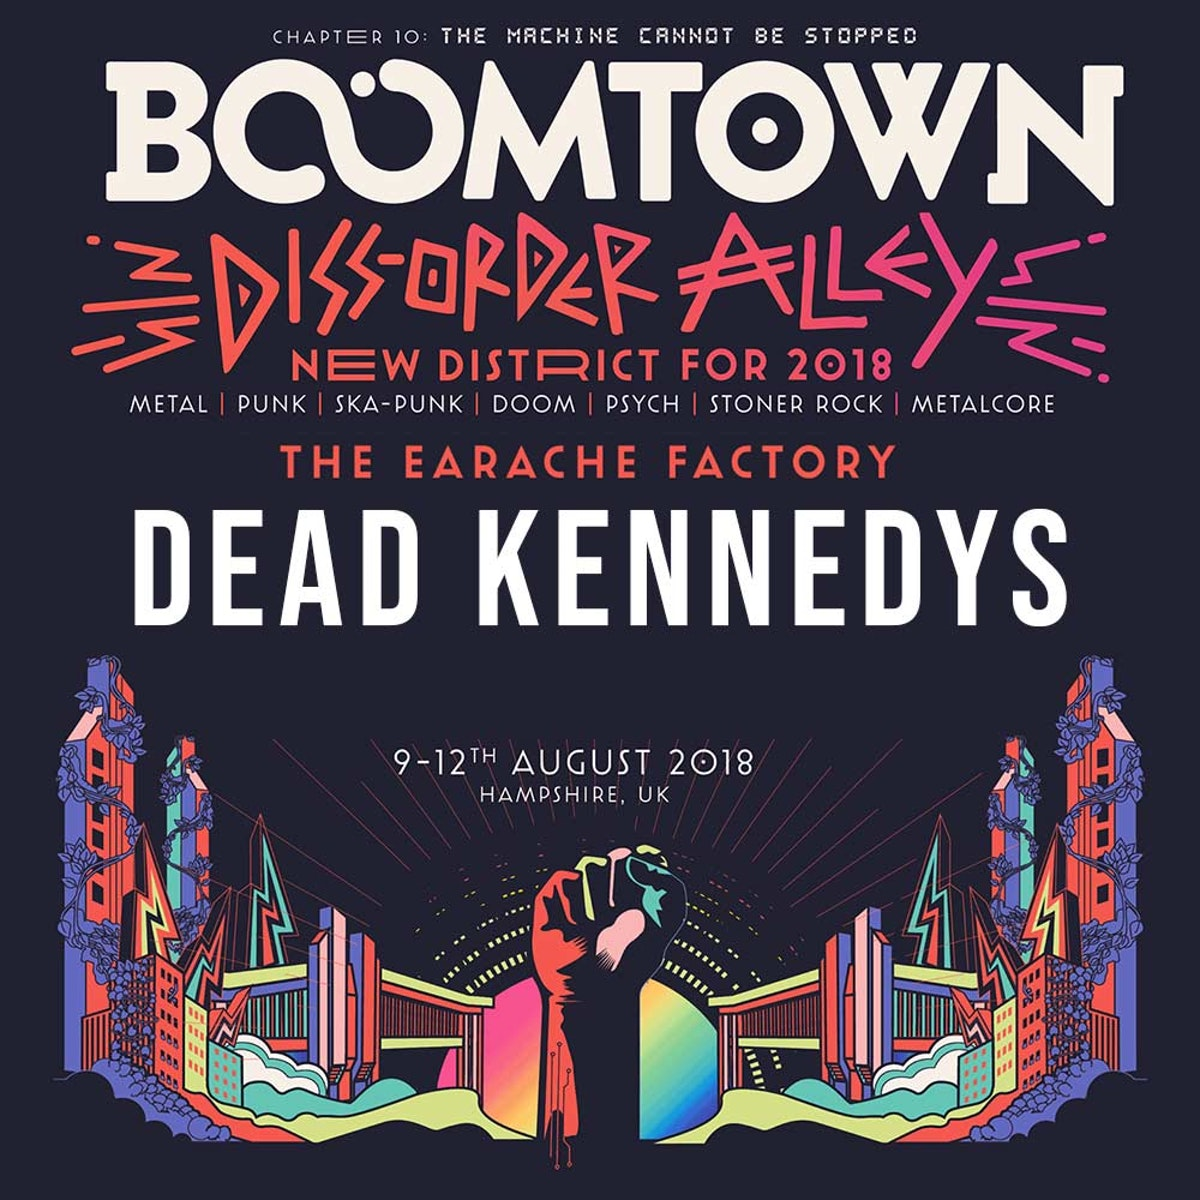 Dead Kennedys added to the Diss-order Alley Line-up!